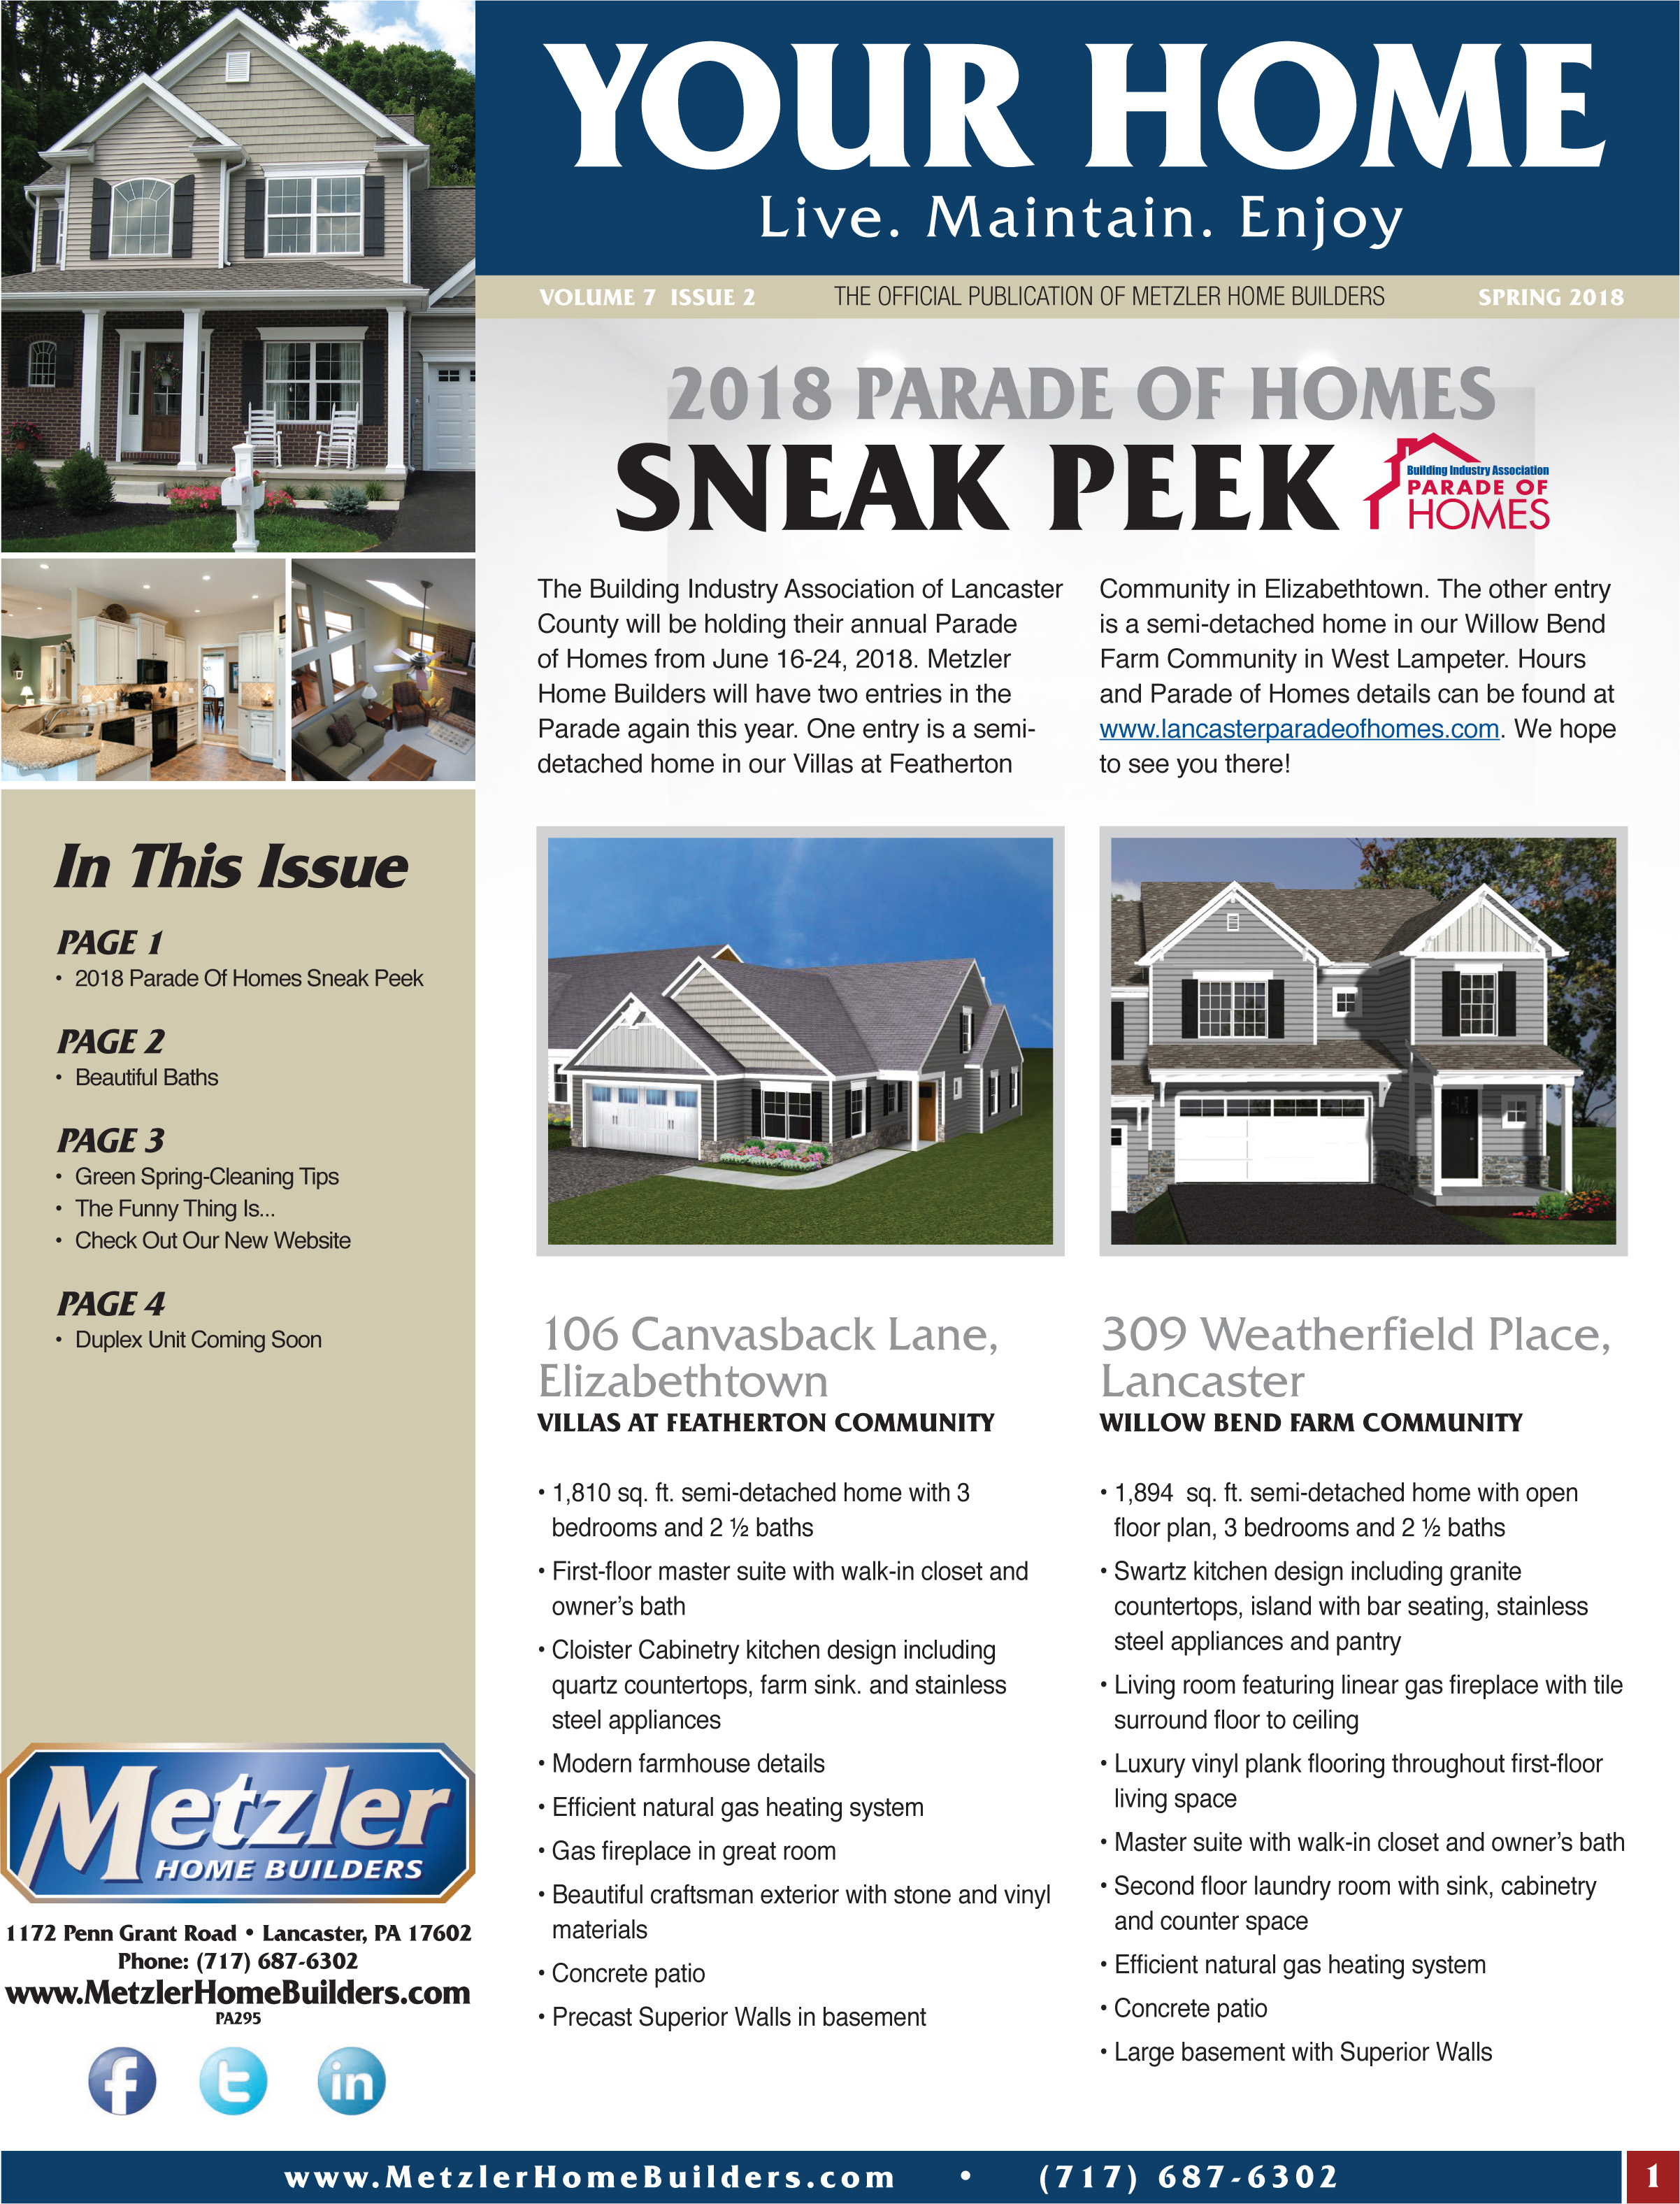 Metzler 'Your Home' Newsletter PDF cover for Volume 7 Issue 2